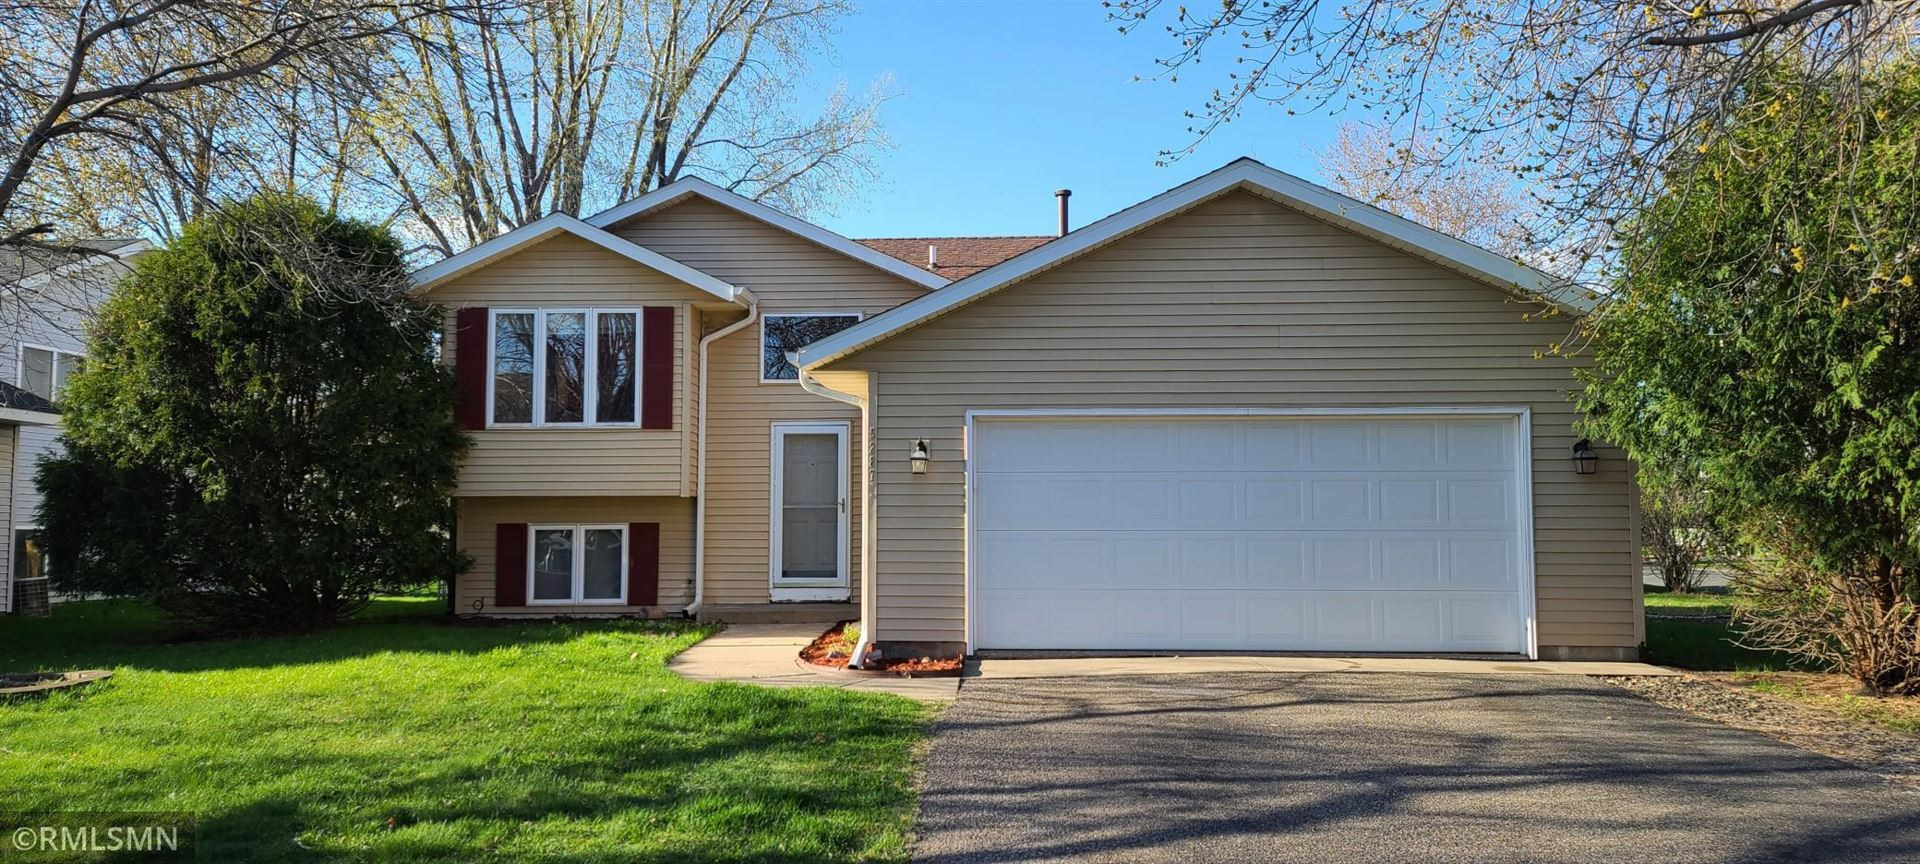 Photo of 5287 185th Street W, Farmington, MN 55024 (MLS # 5746111)